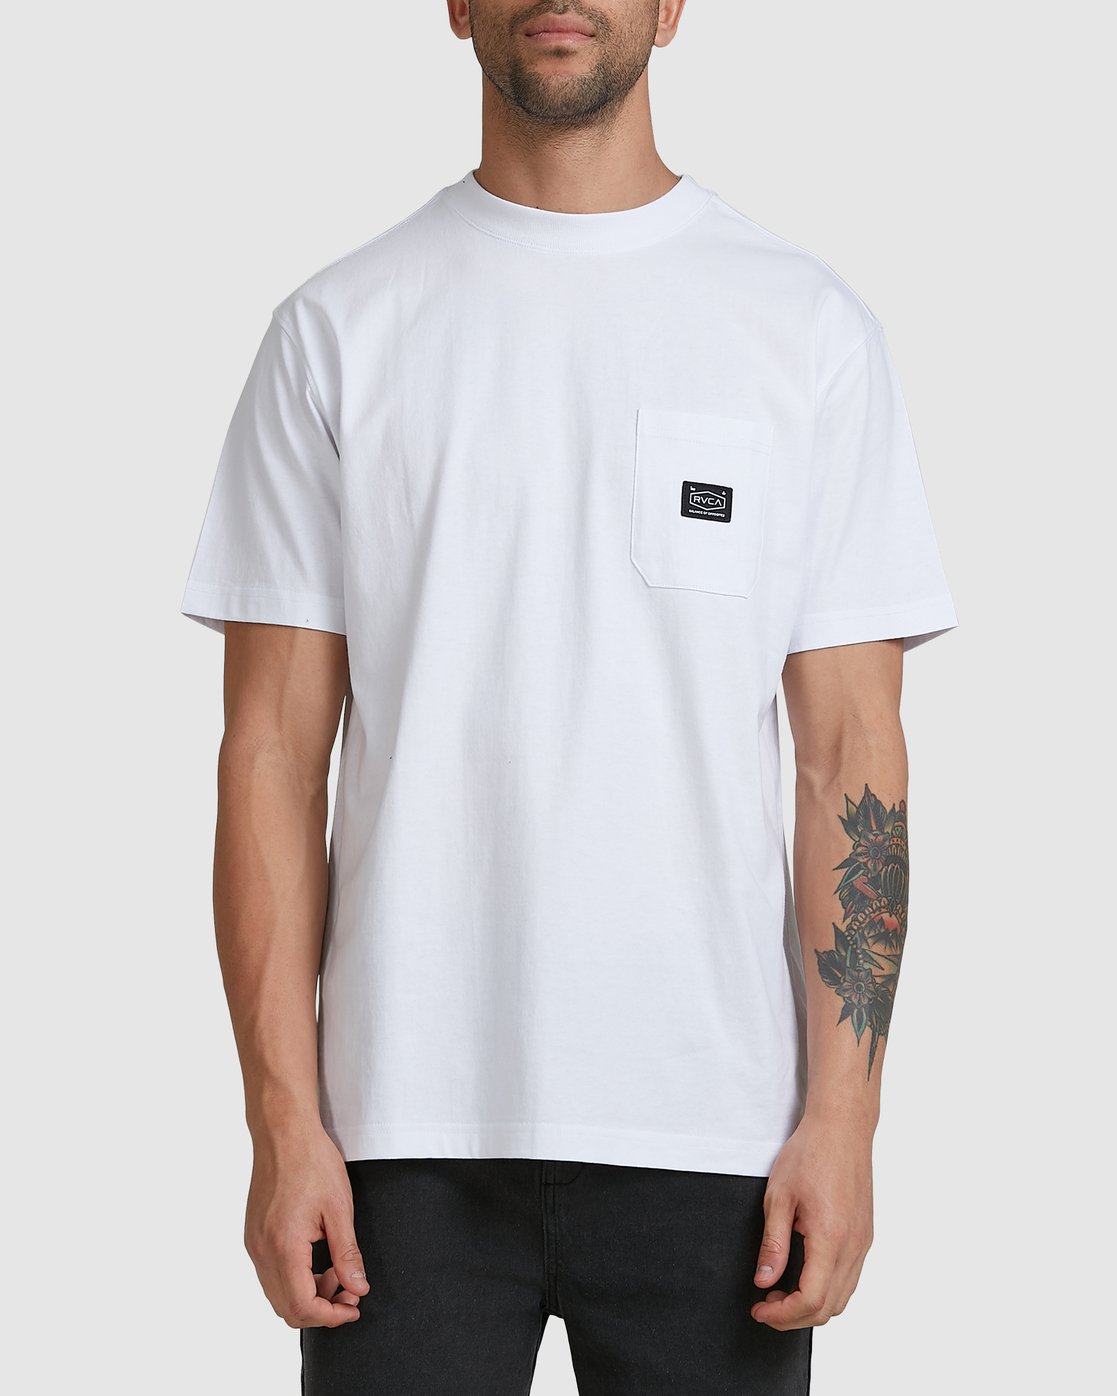 0 CHAINMAIL POCKET SS TEE White R105069 RVCA